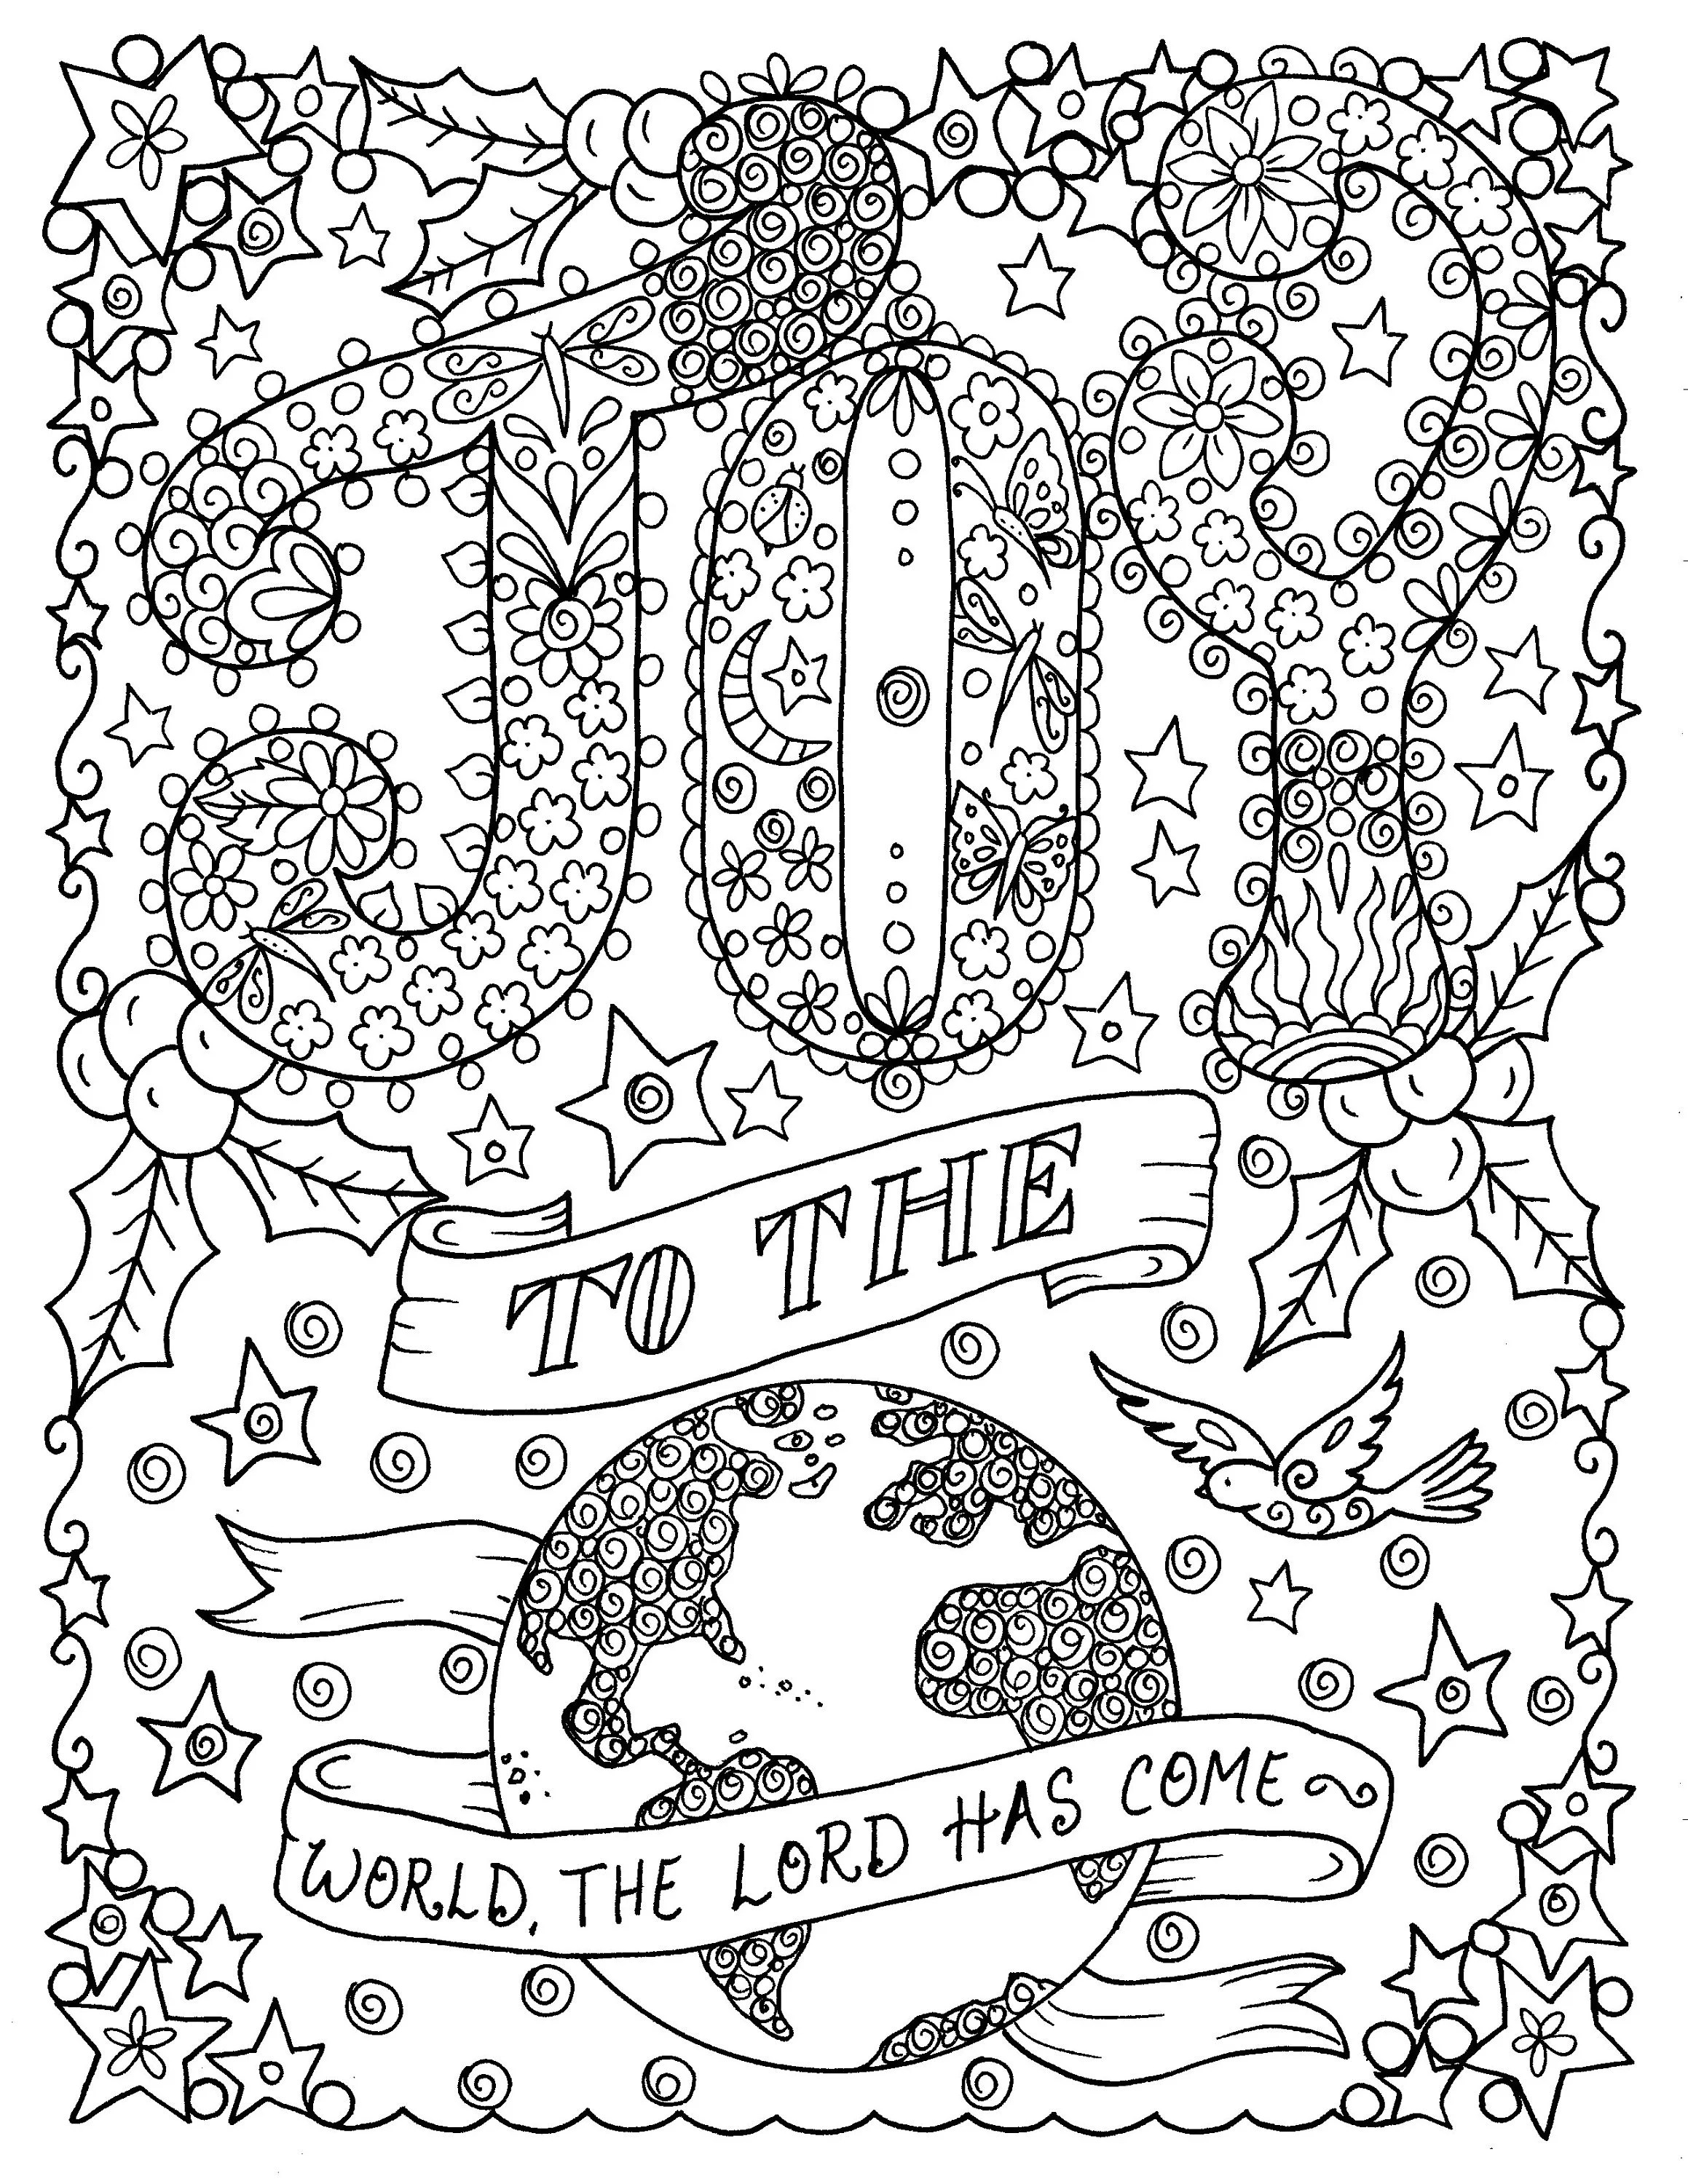 Joy To The World Printable Coloring Page Church Christian